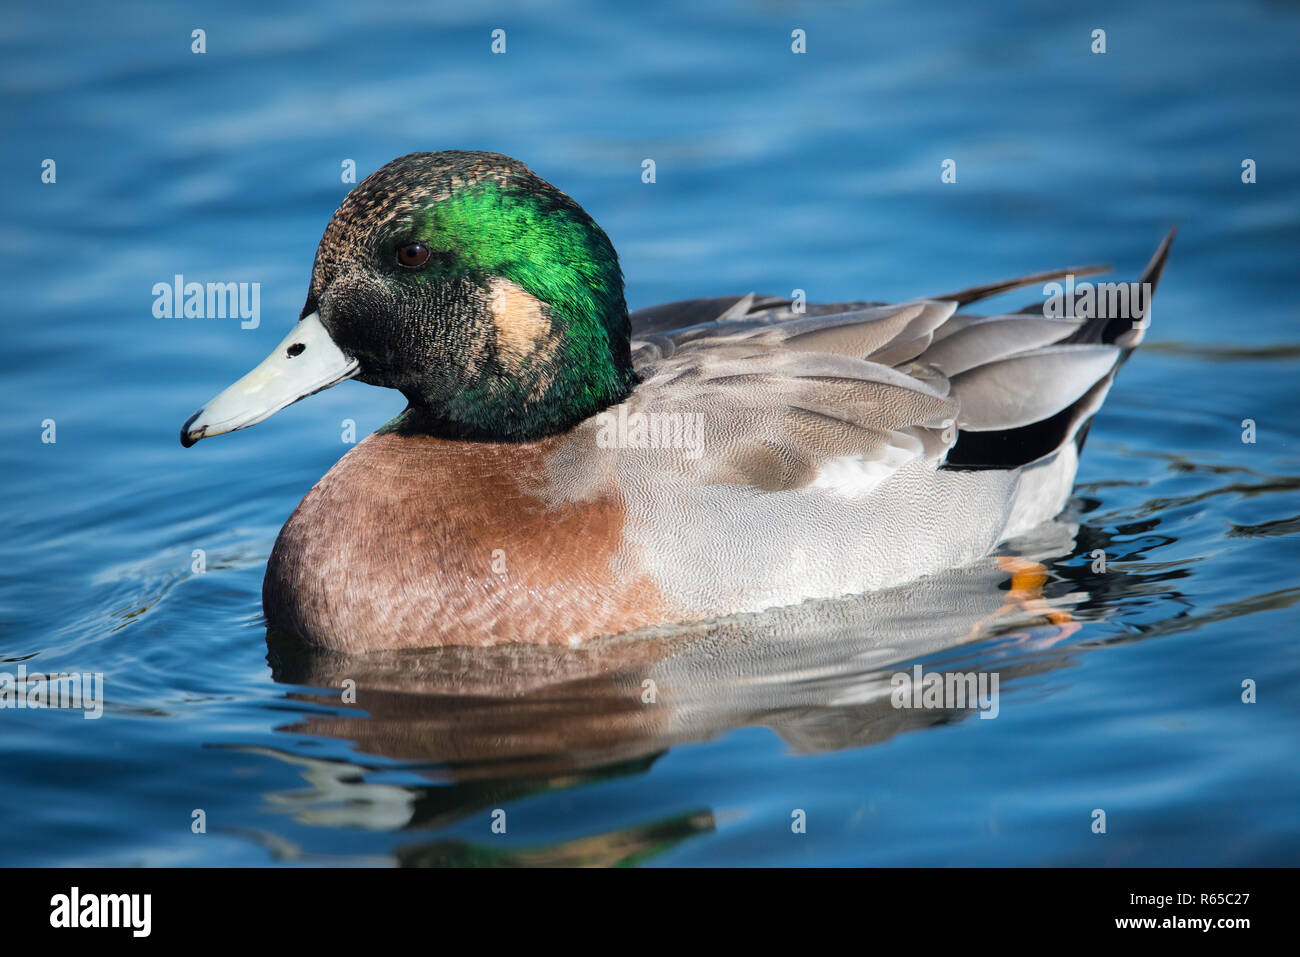 A hybrid Mallard x American Wigeon duck at Humber Bay park in Toronto, Ontario, Canada.  Mallards are notorious for hybridizing with other species. Stock Photo